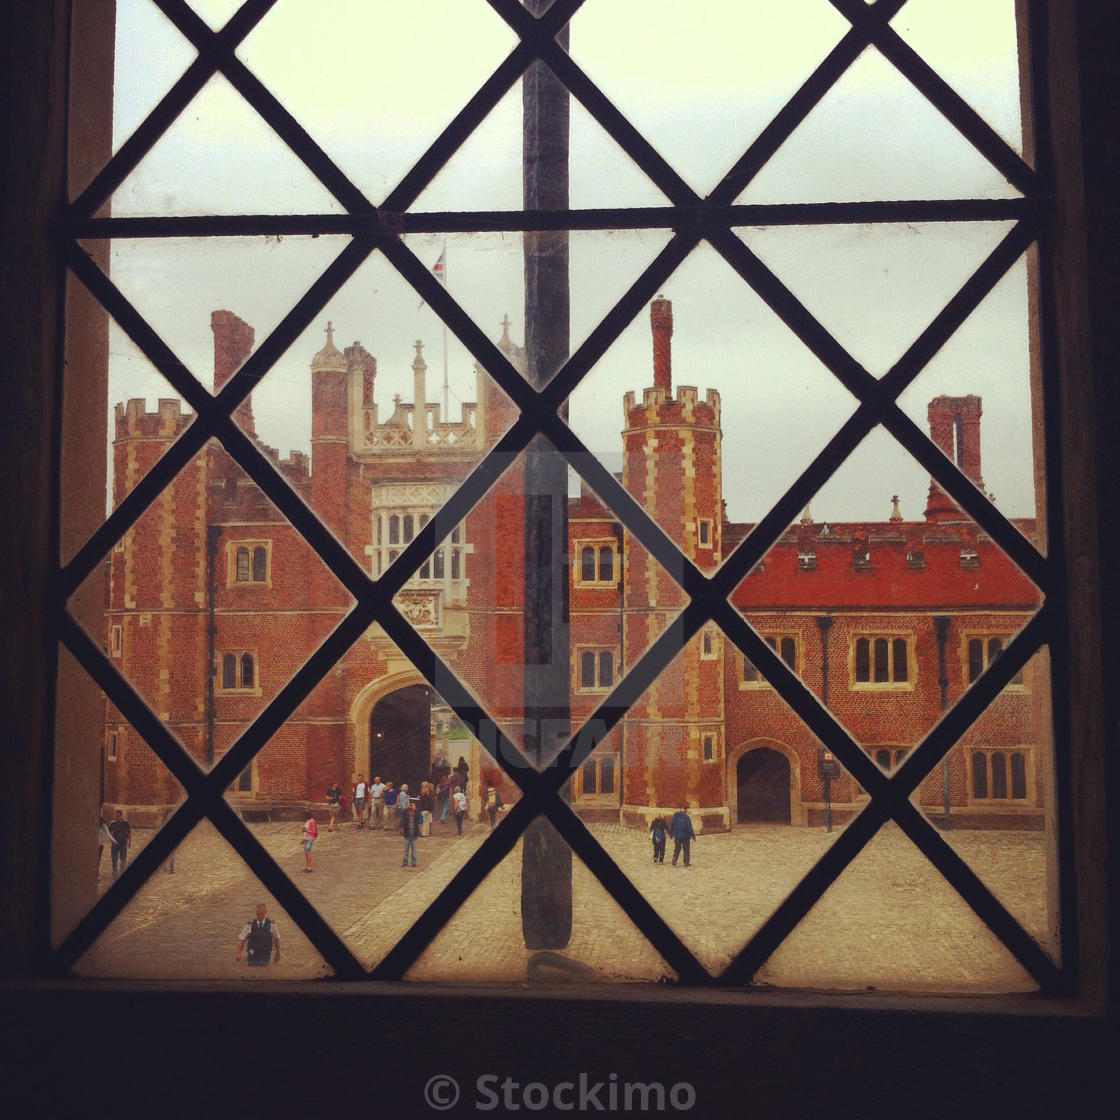 """View of base court through a leaded window at Hampton Court Palace, Surrey"" stock image"